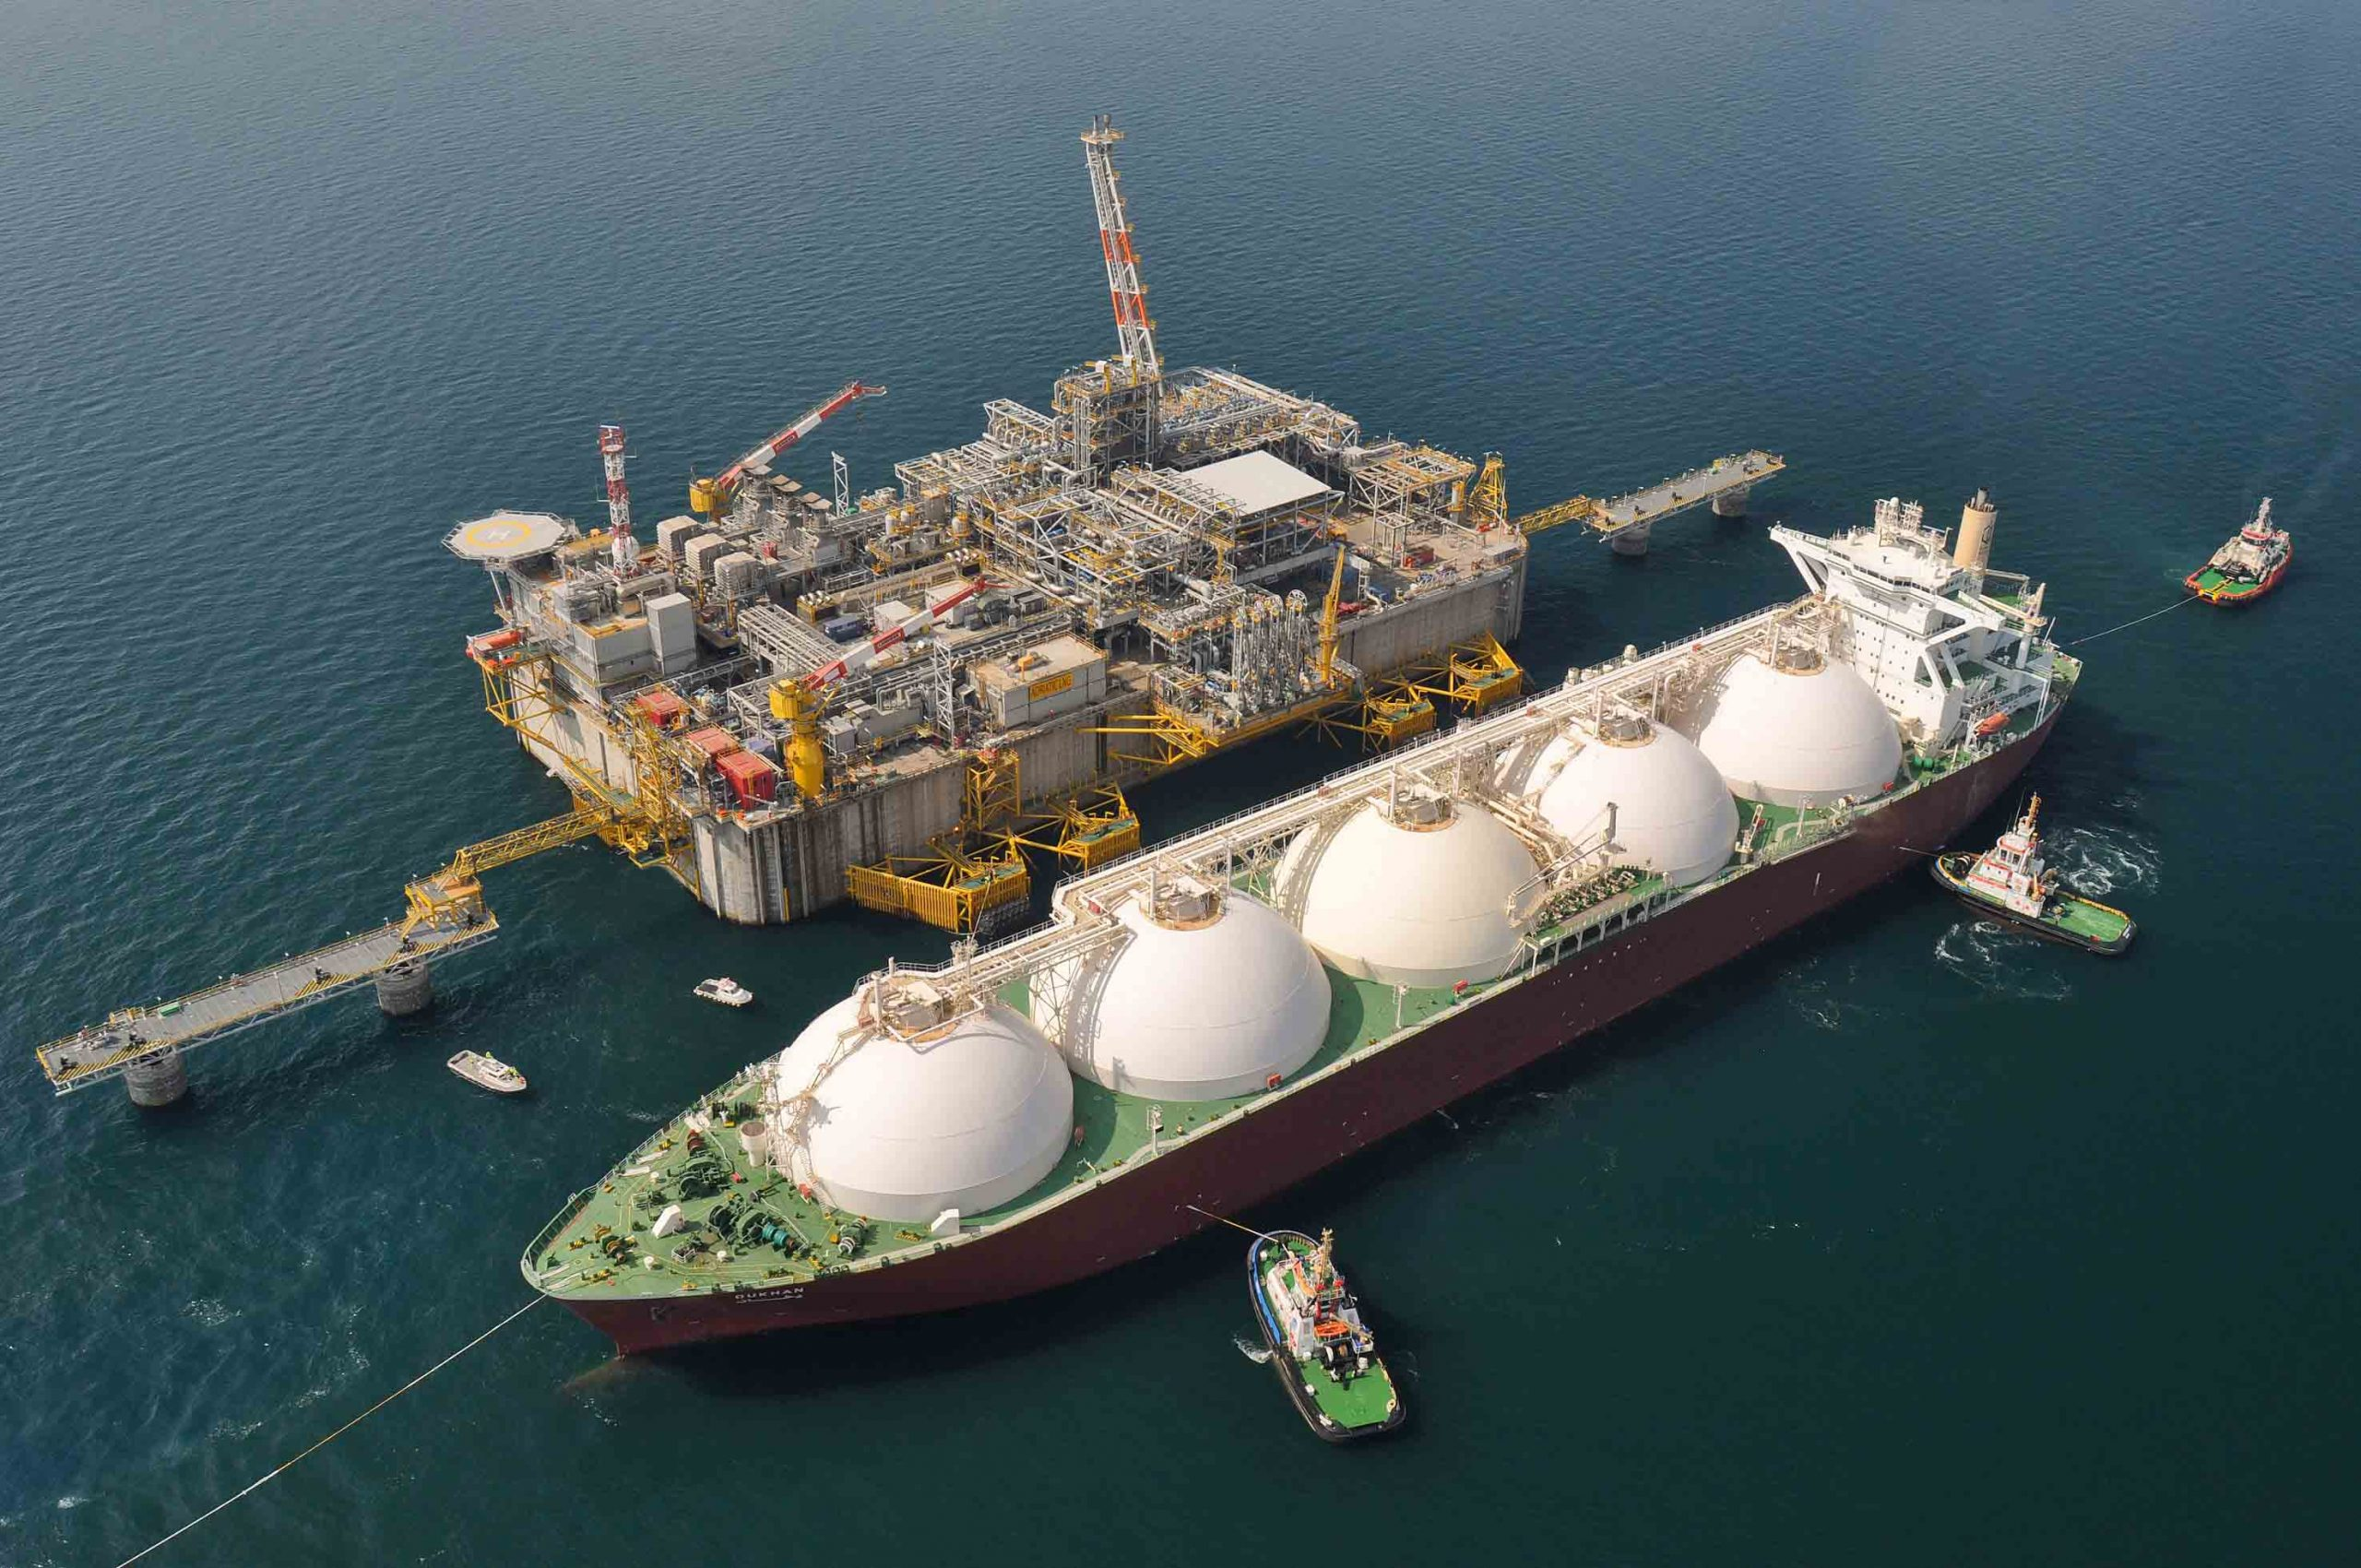 Australian Gas Prices: What Can We Expect in Terms of Volatility?